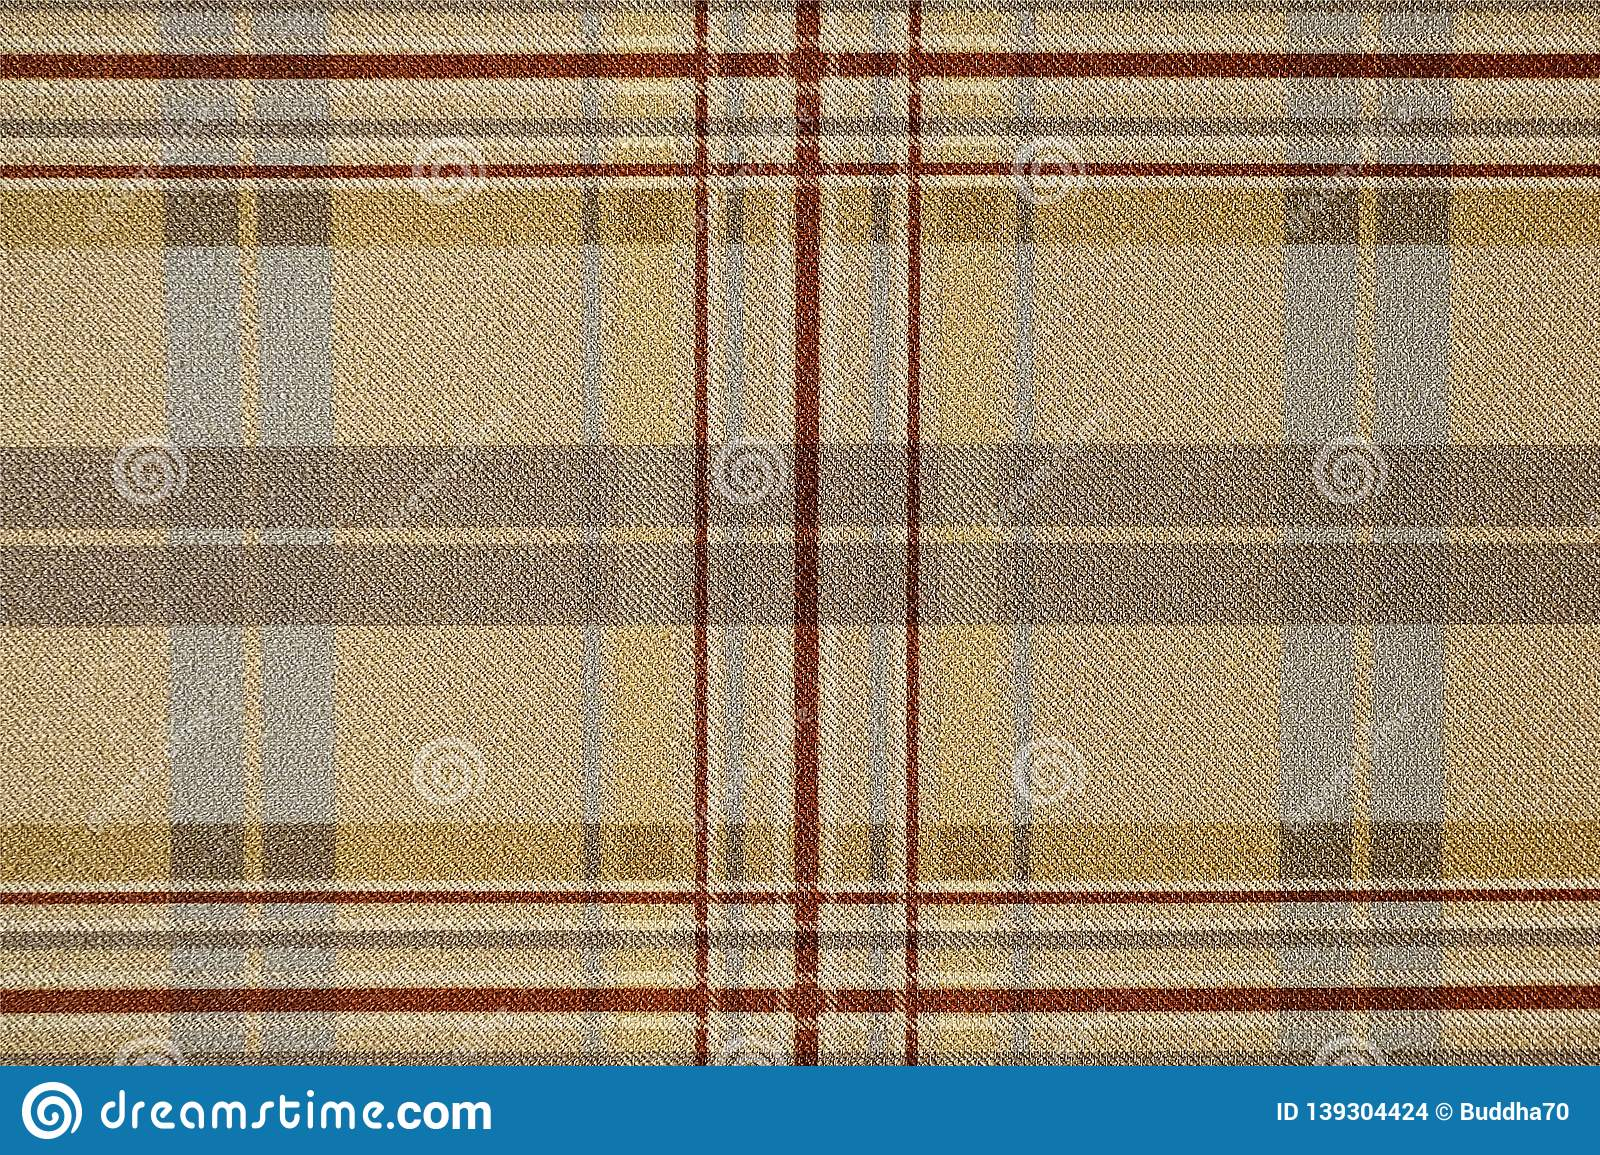 Fabric brown plaid. Brown check pattern. Tartan design as background. Checked fabric.